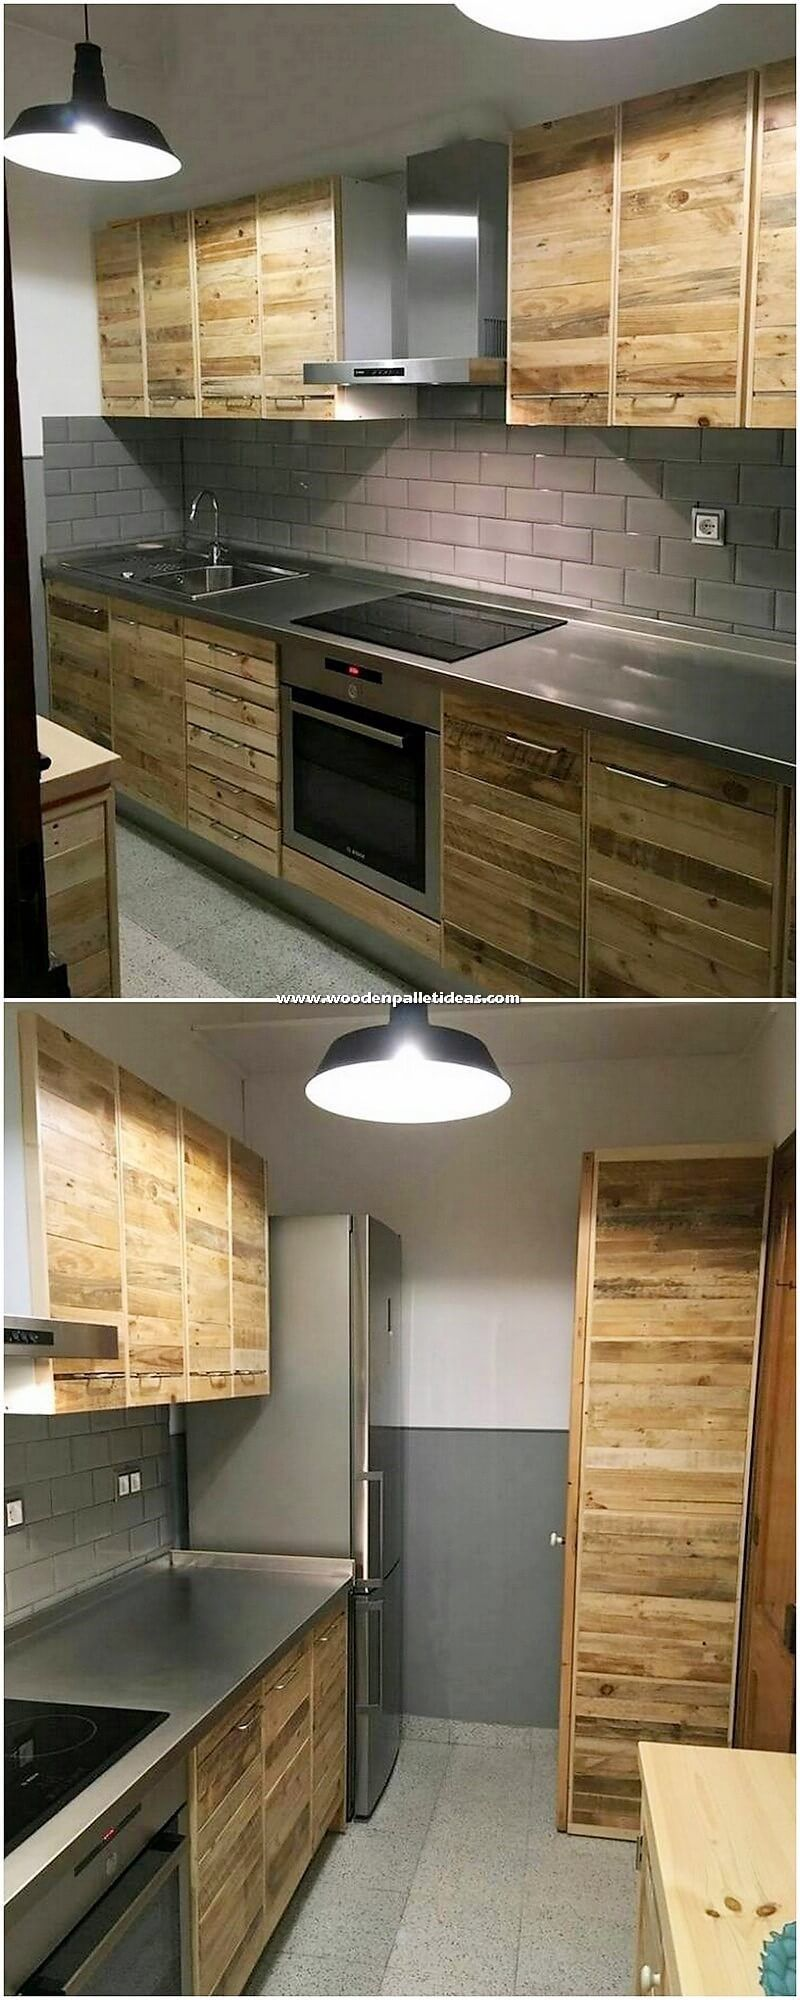 Let S Check Out The Flawless Designing Of The Kitchen Cabinets Where The Material Of The Wood Pallet Is Att Pallet Kitchen Rustic Kitchen Design Kitchen Design